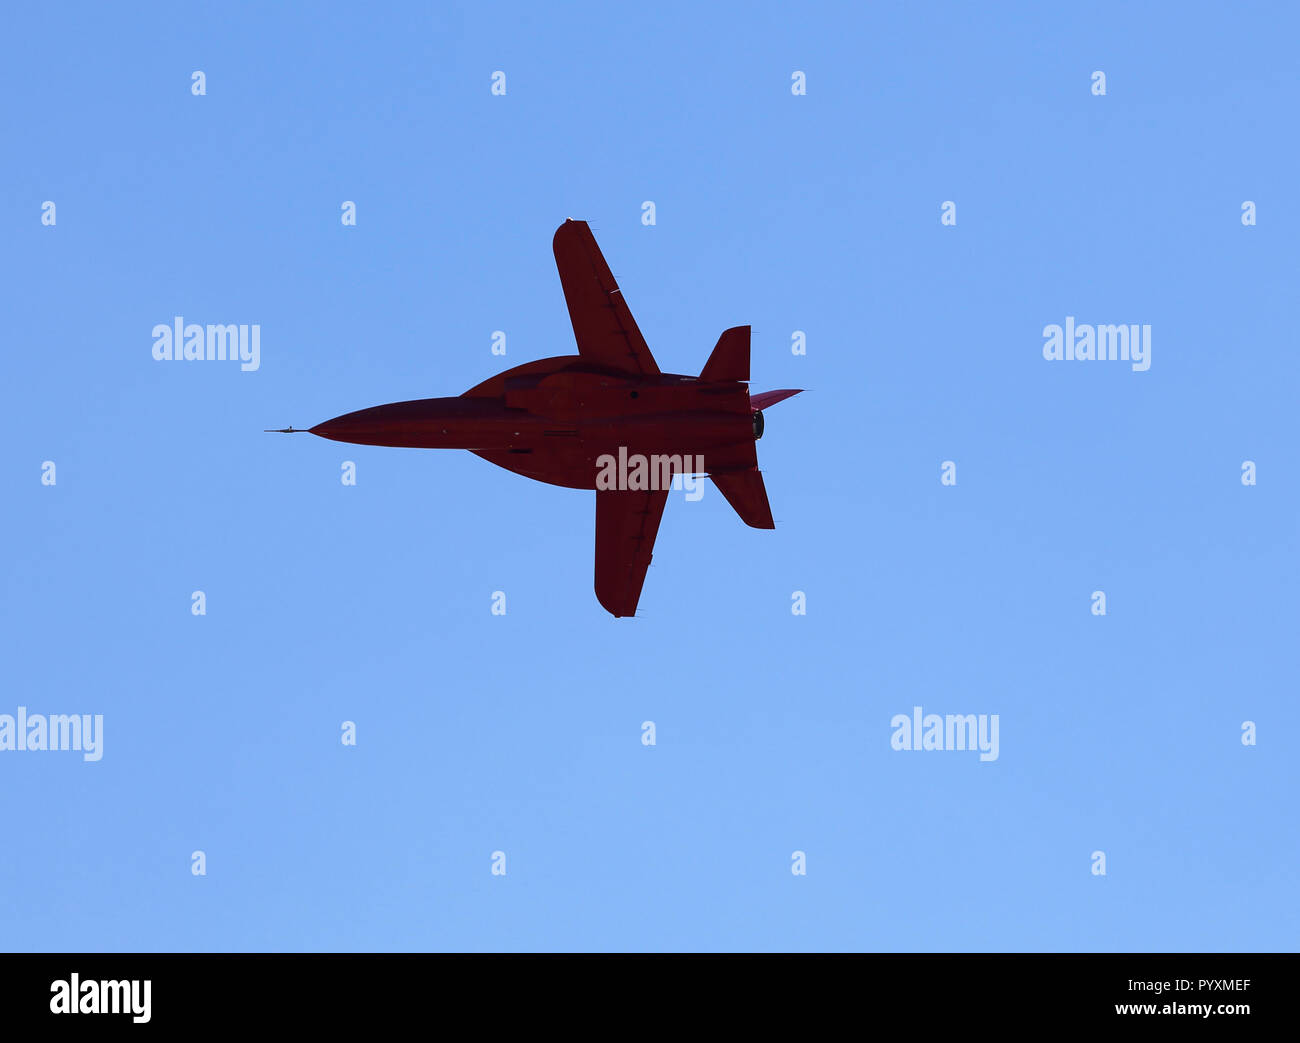 Single jet aircraft with a swept wing, bottom view - Stock Image